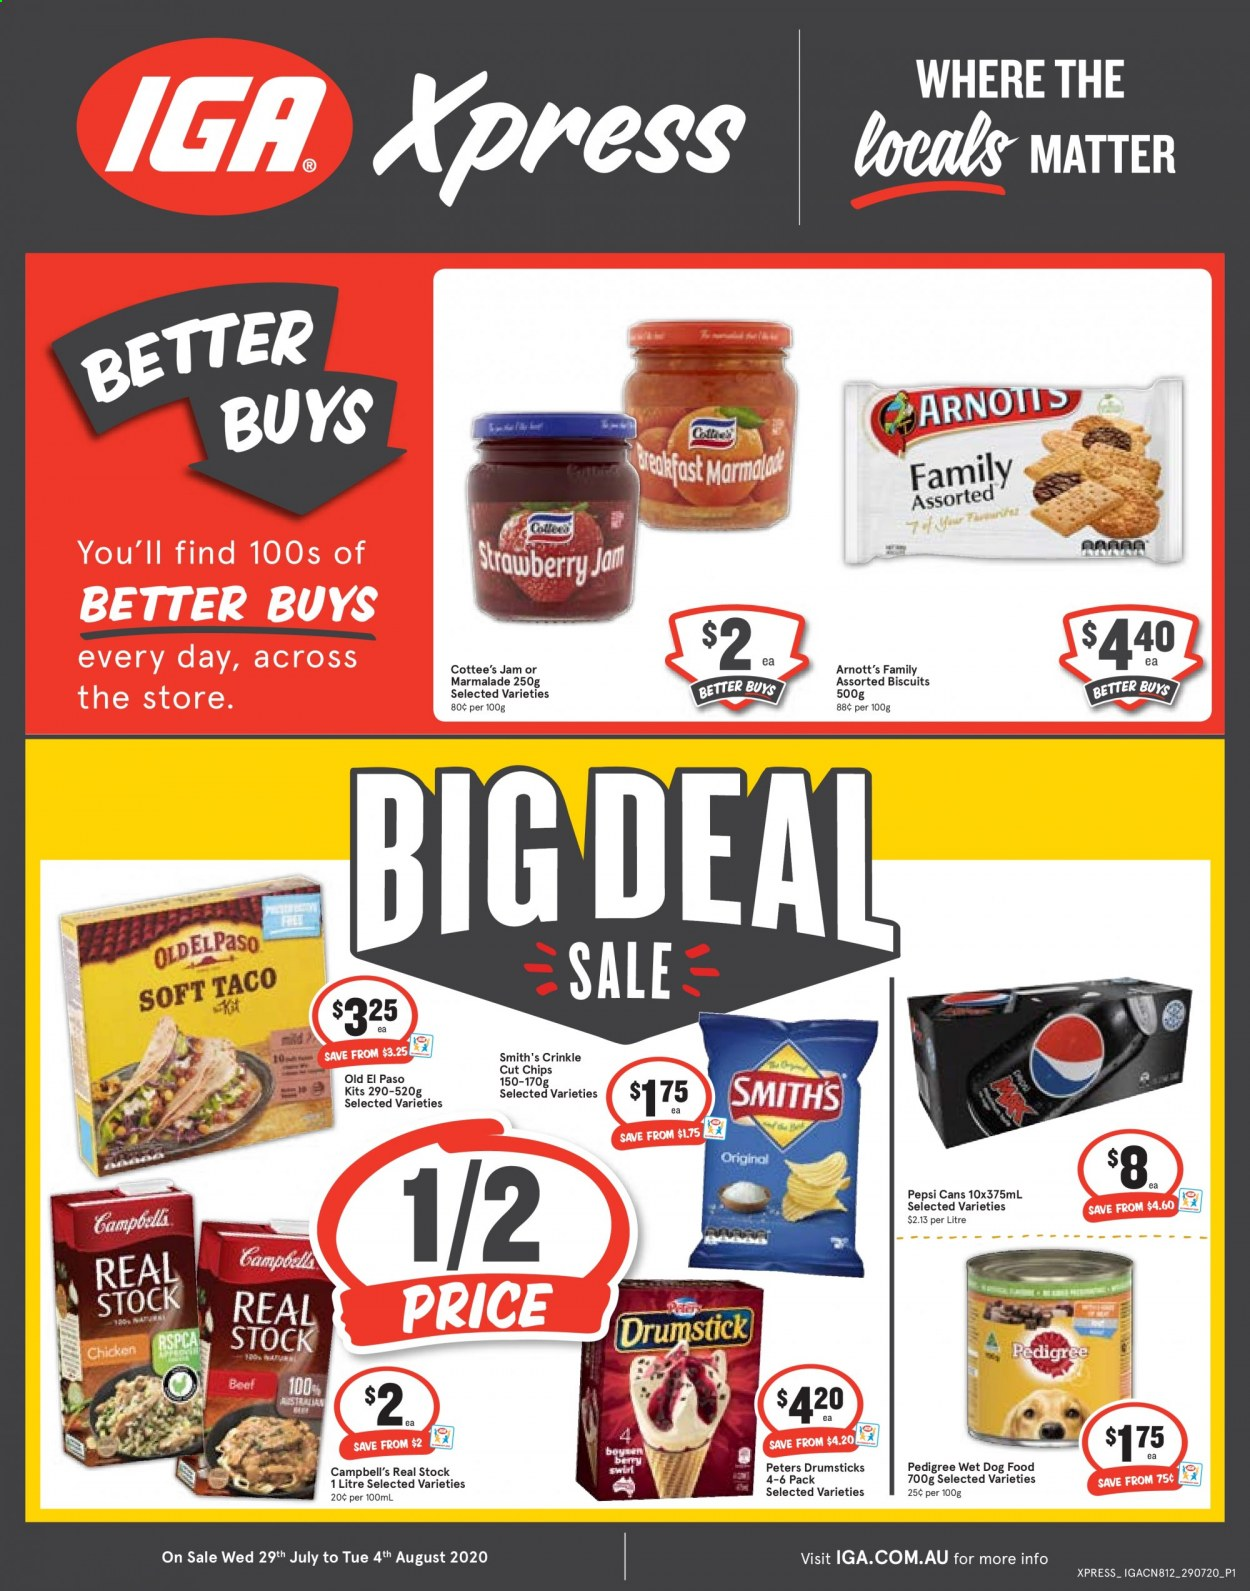 IGA Catalogue - 29.7.2020 - 4.8.2020 - Sales products - animal food, beef meat, biscuits, campbell's, dog food, wet dog food, jam, chicken, pepsi, chips, berry. Page 1.